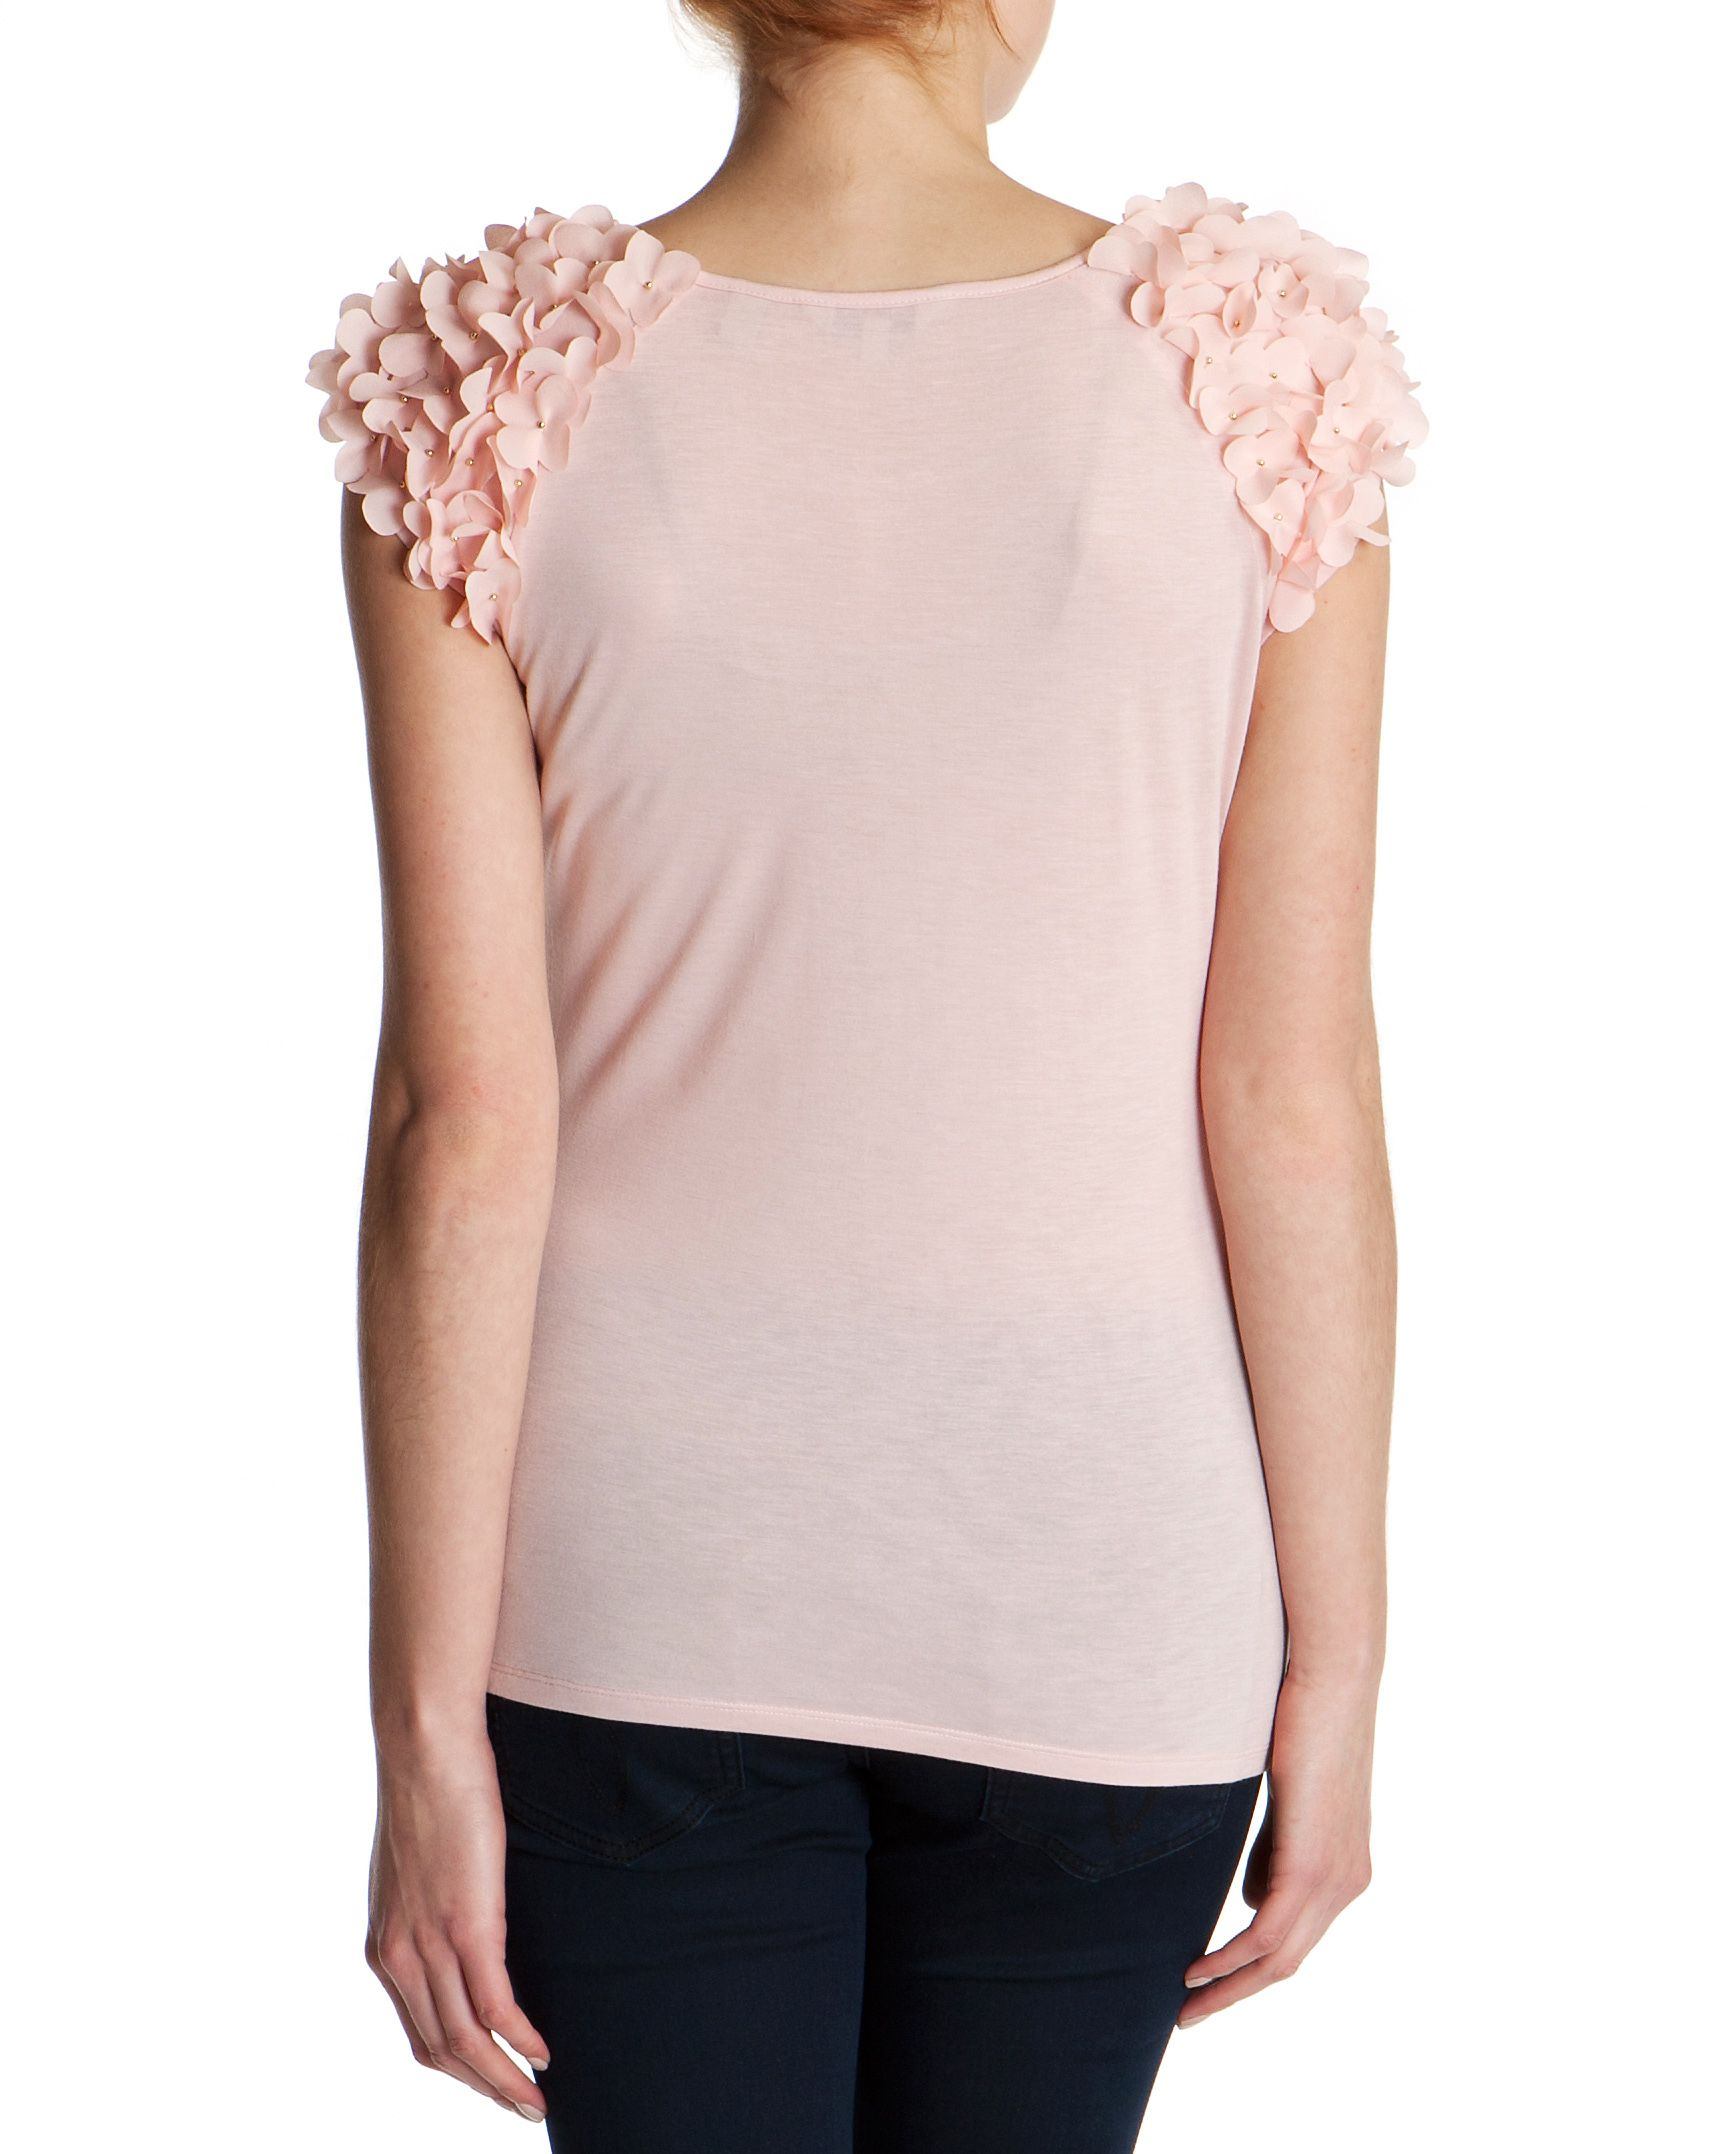 Anissa Flower detail top